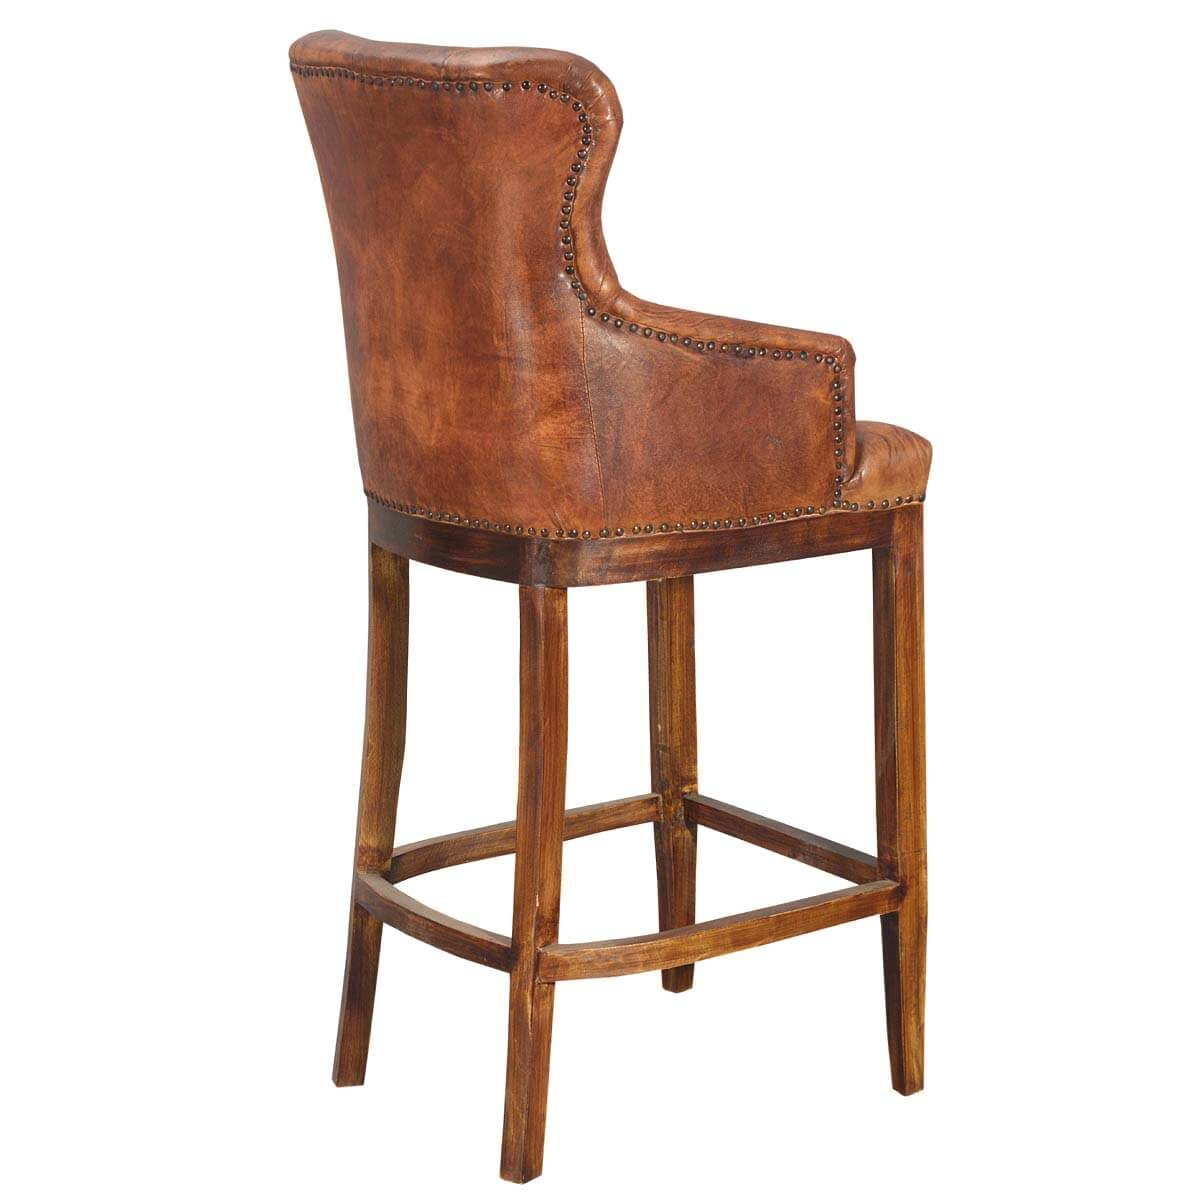 Handsome And Comfortable Bar Stool With Rich Leather